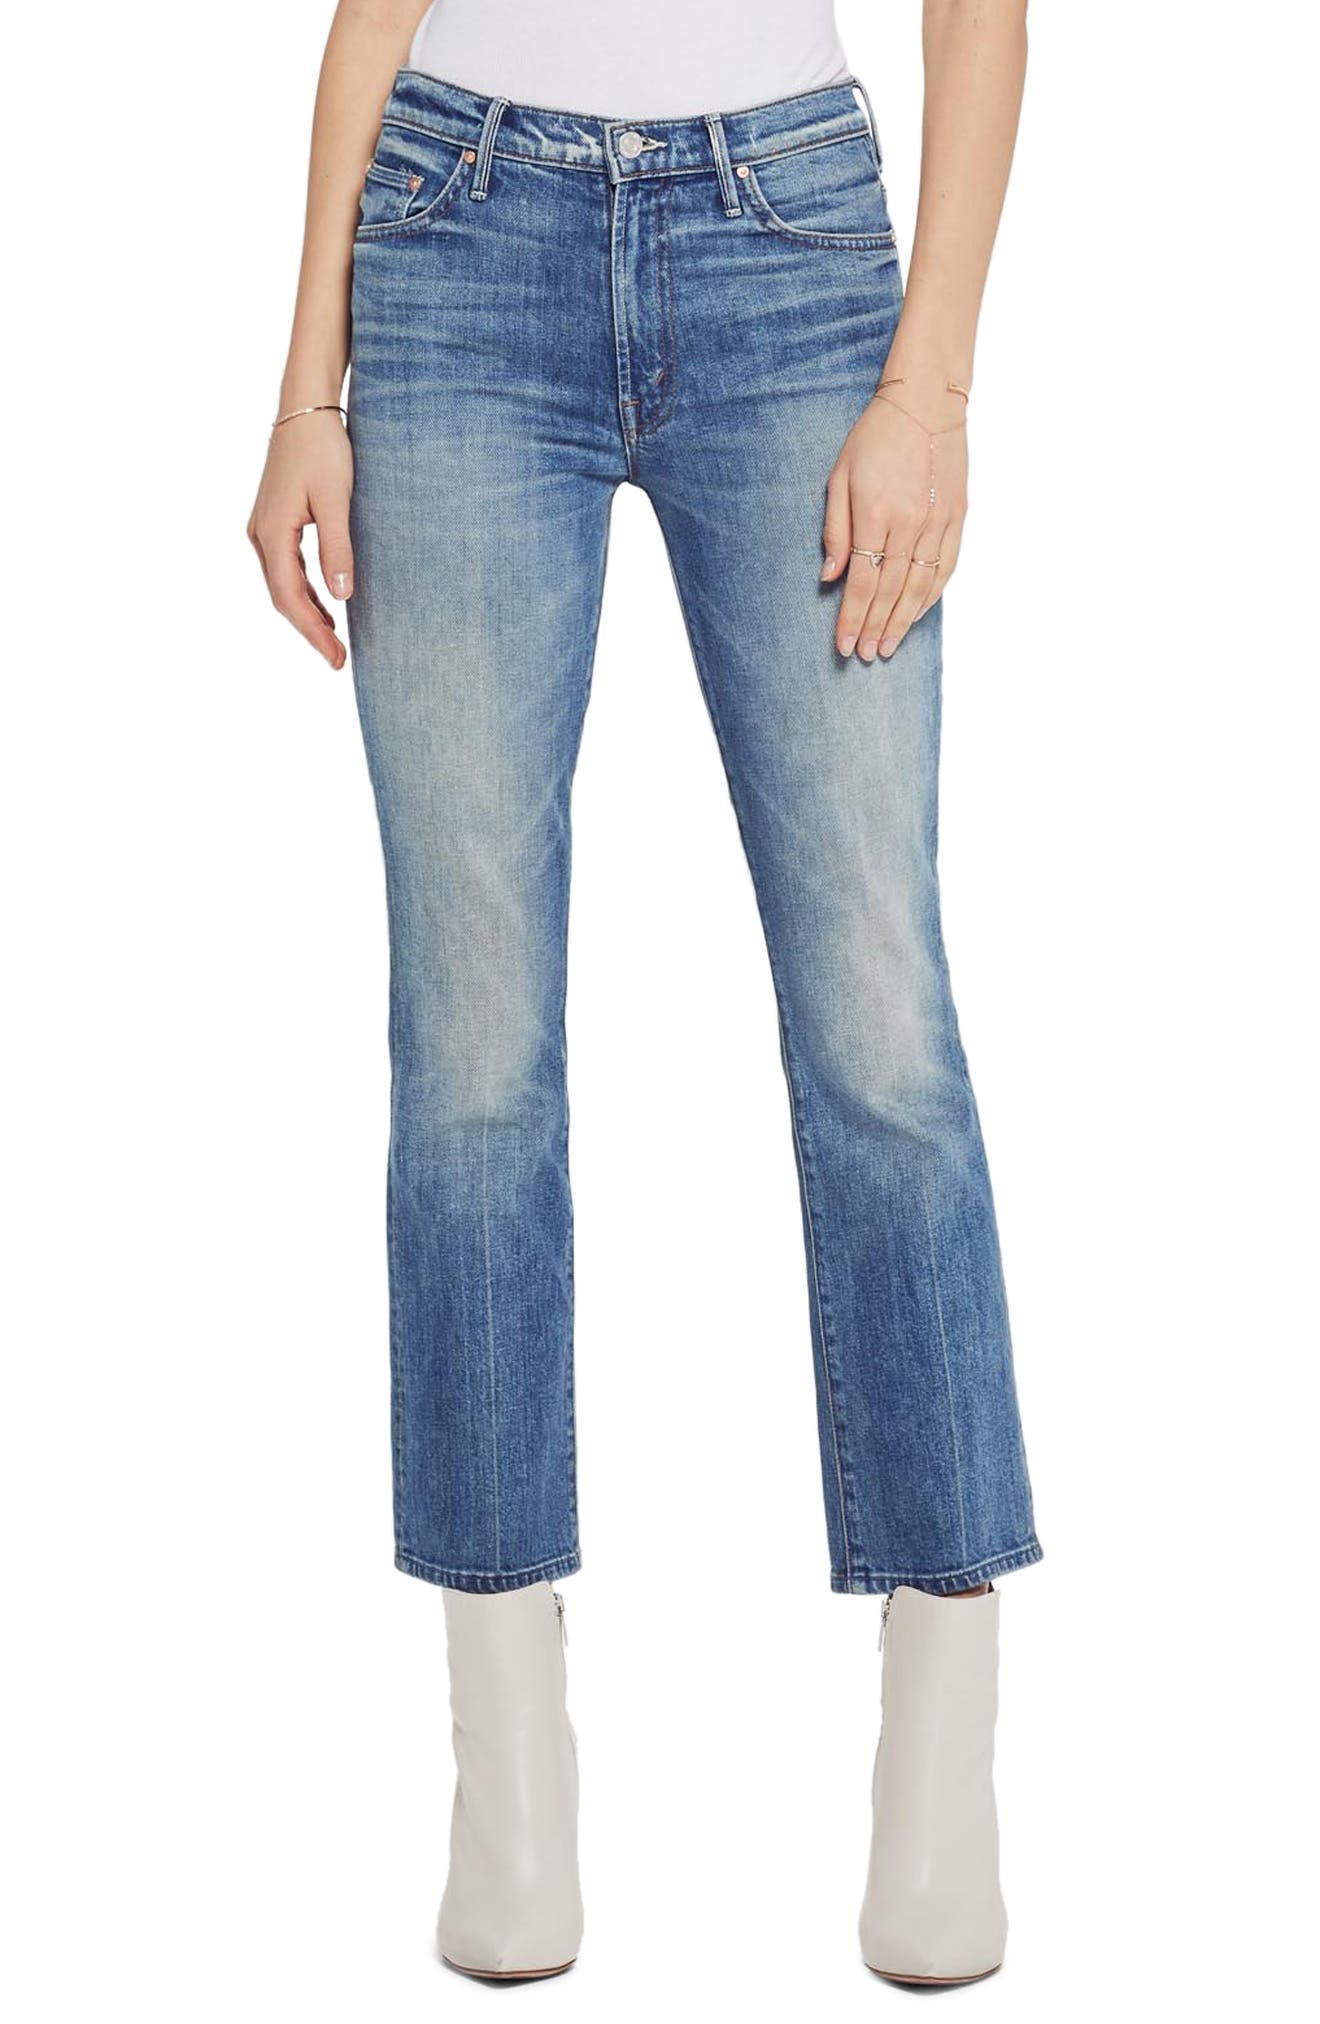 MOTHER, The Insider Ankle Bootcut Jeans, Main thumbnail 1, color, 421